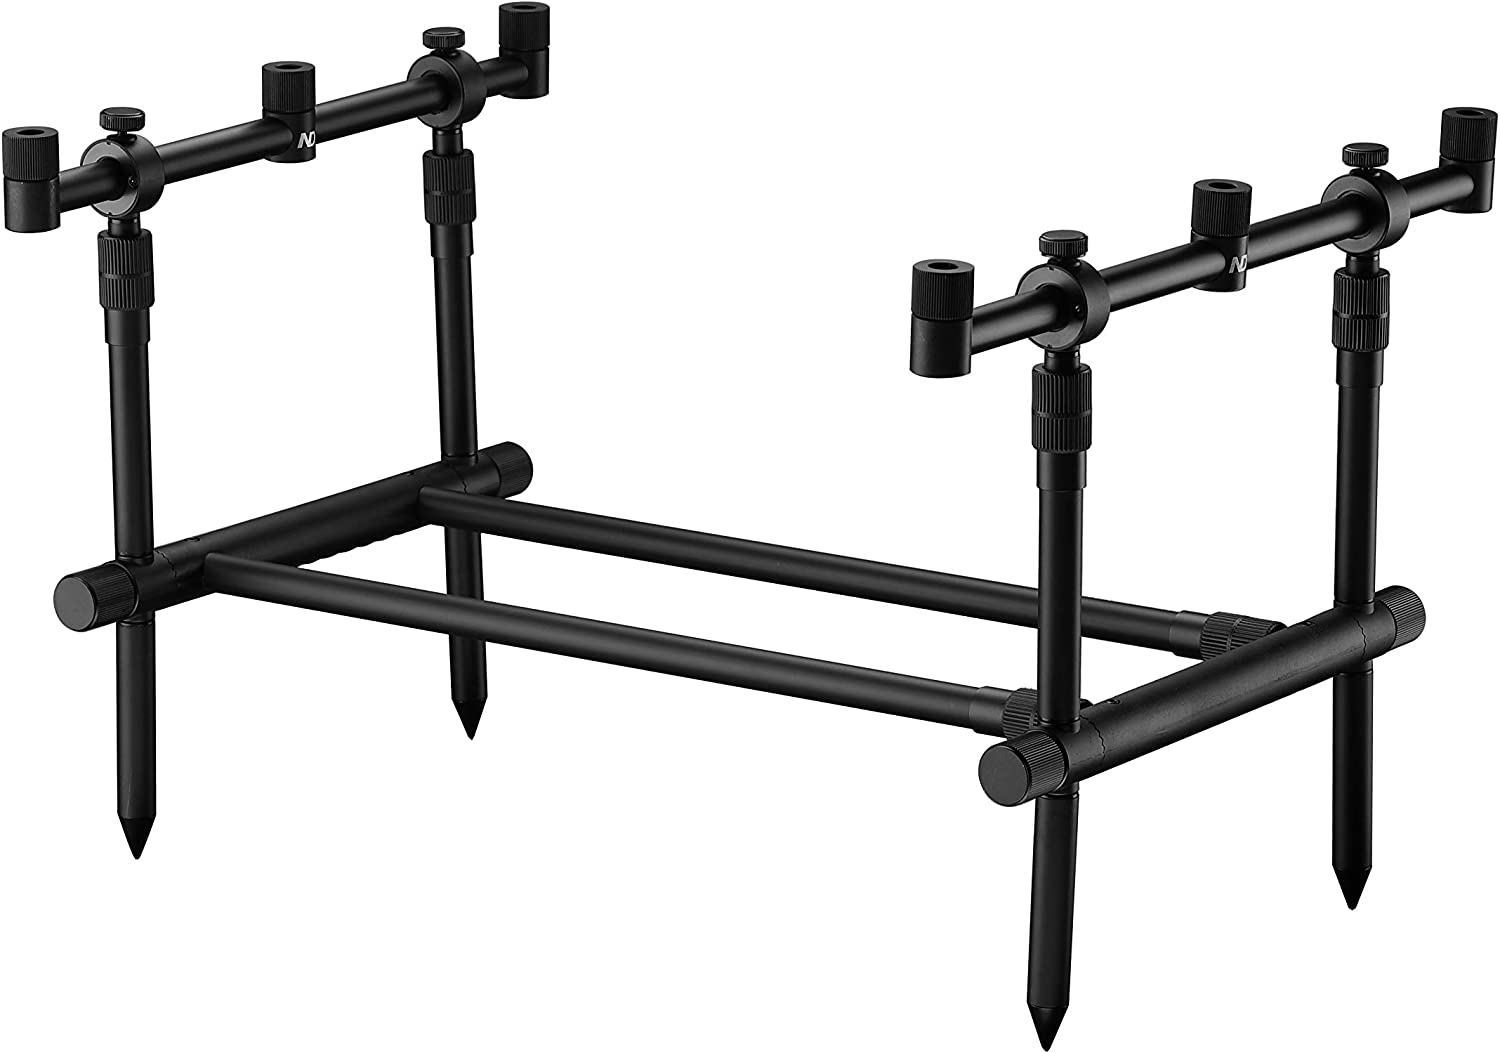 New Direction Tackle Rod pod (3 rods) for carp Fishing